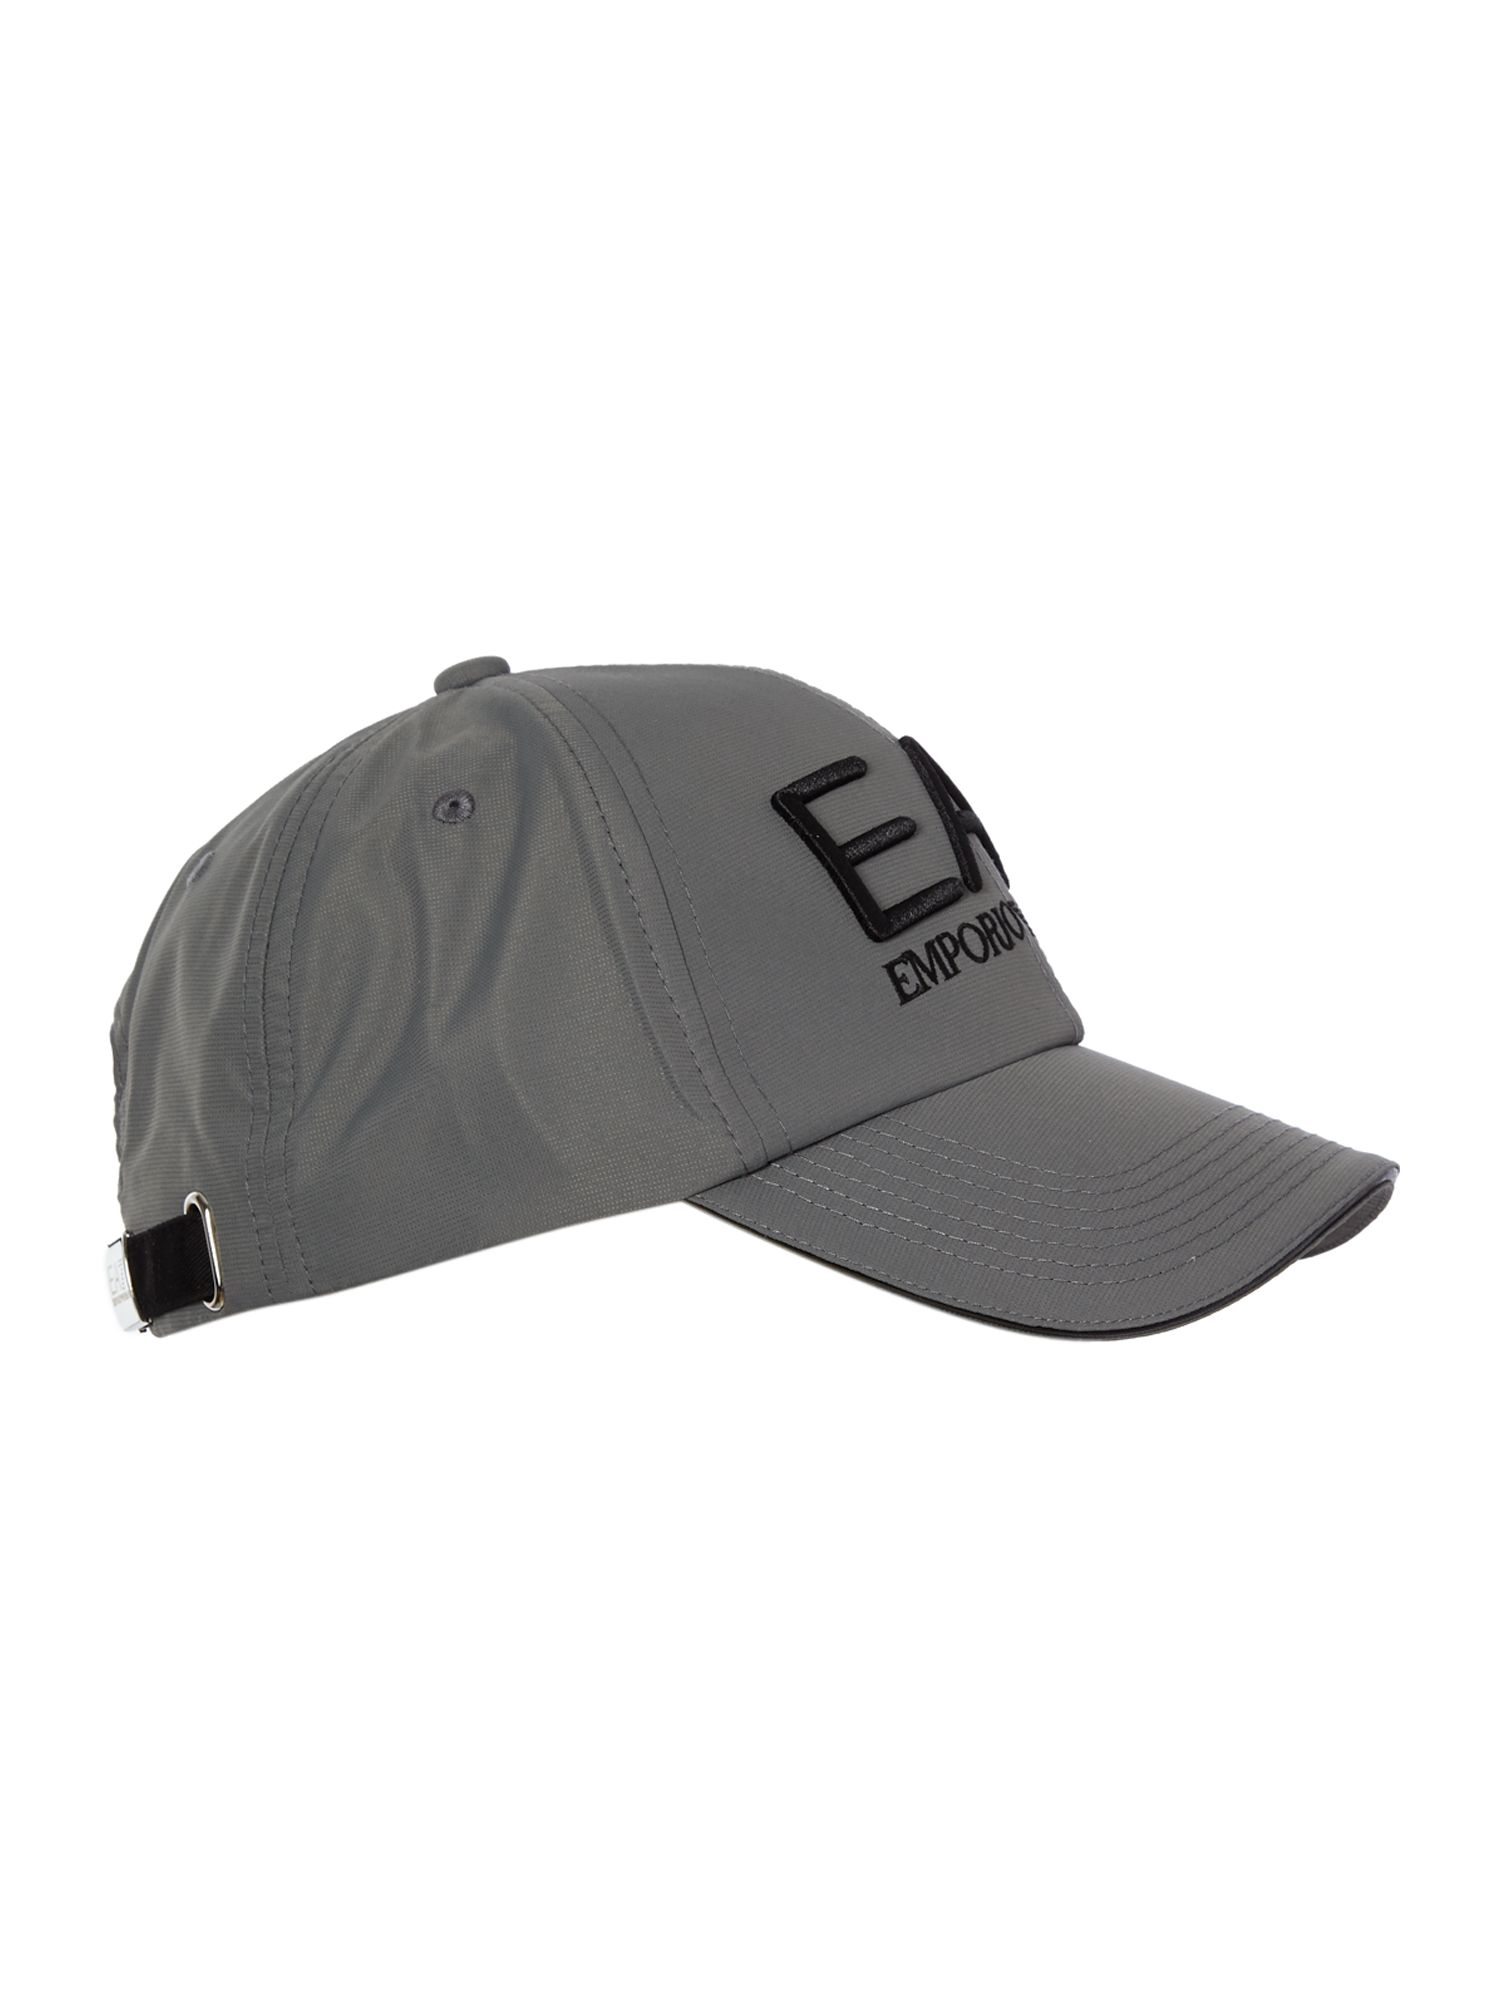 Evolution big logo baseball cap